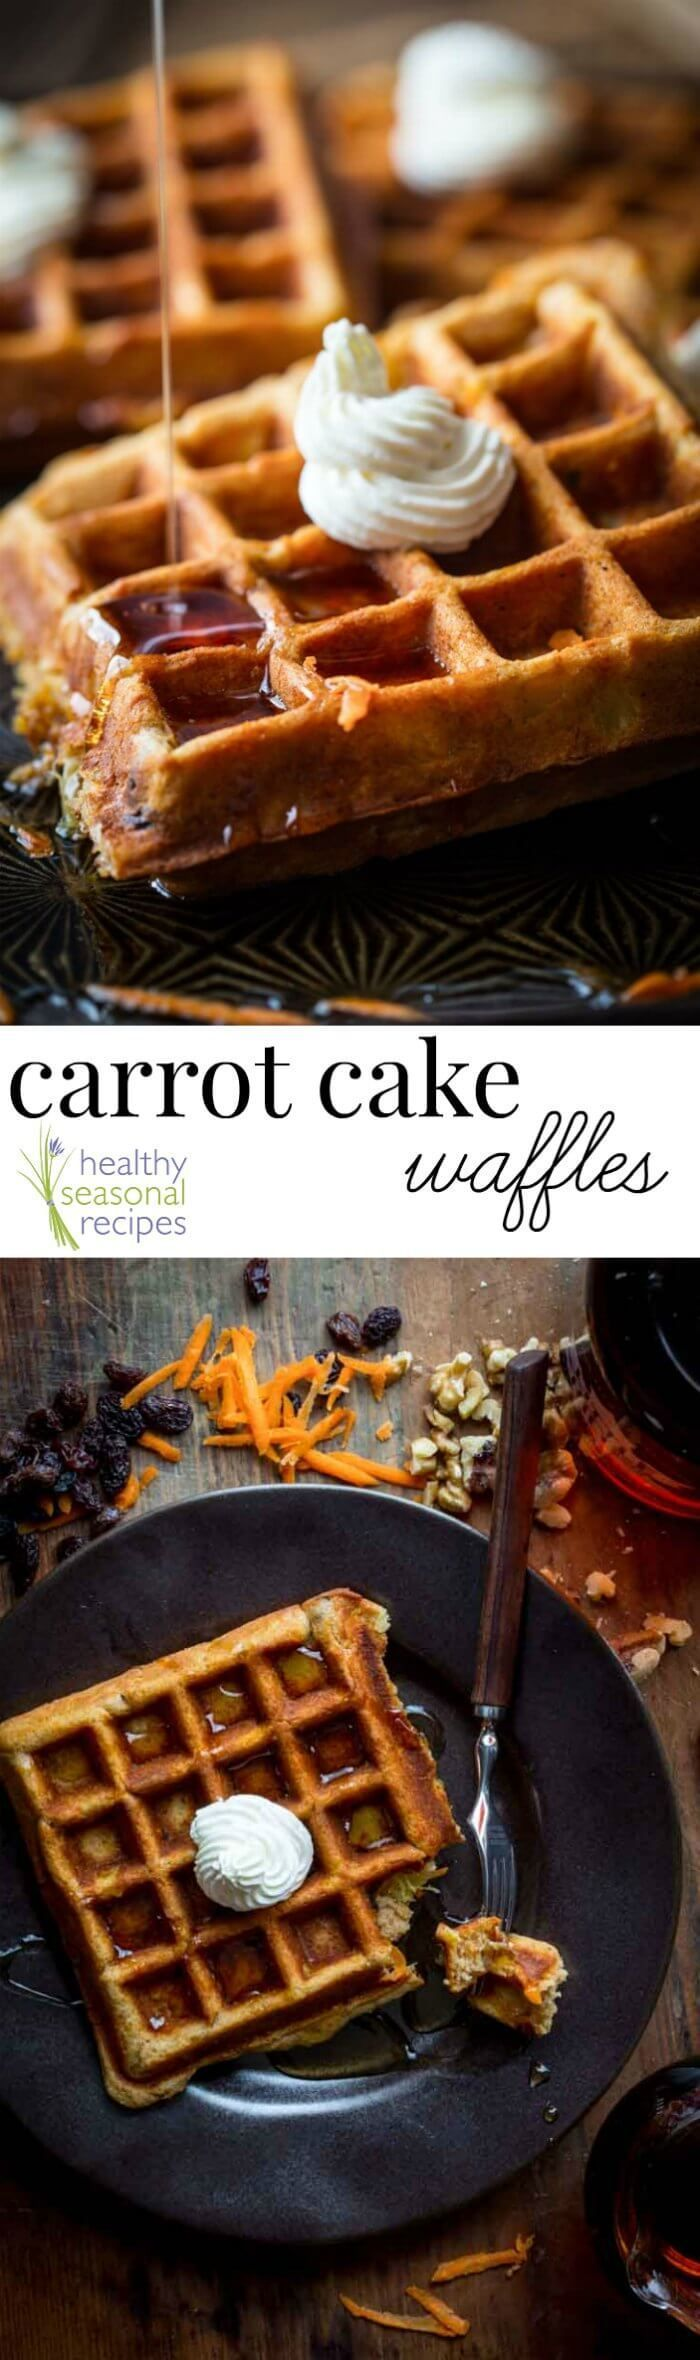 These Carrot Cake Waffles are a cross between a hearty, wholesome whole-wheat waffle and a slice of carrot cake. They have 9 grams of protein, 5 grams of fiber and nearly 25% of the RDA for Vitamin A and C. @healthyseasonal   Healthy Seasonal Recipes